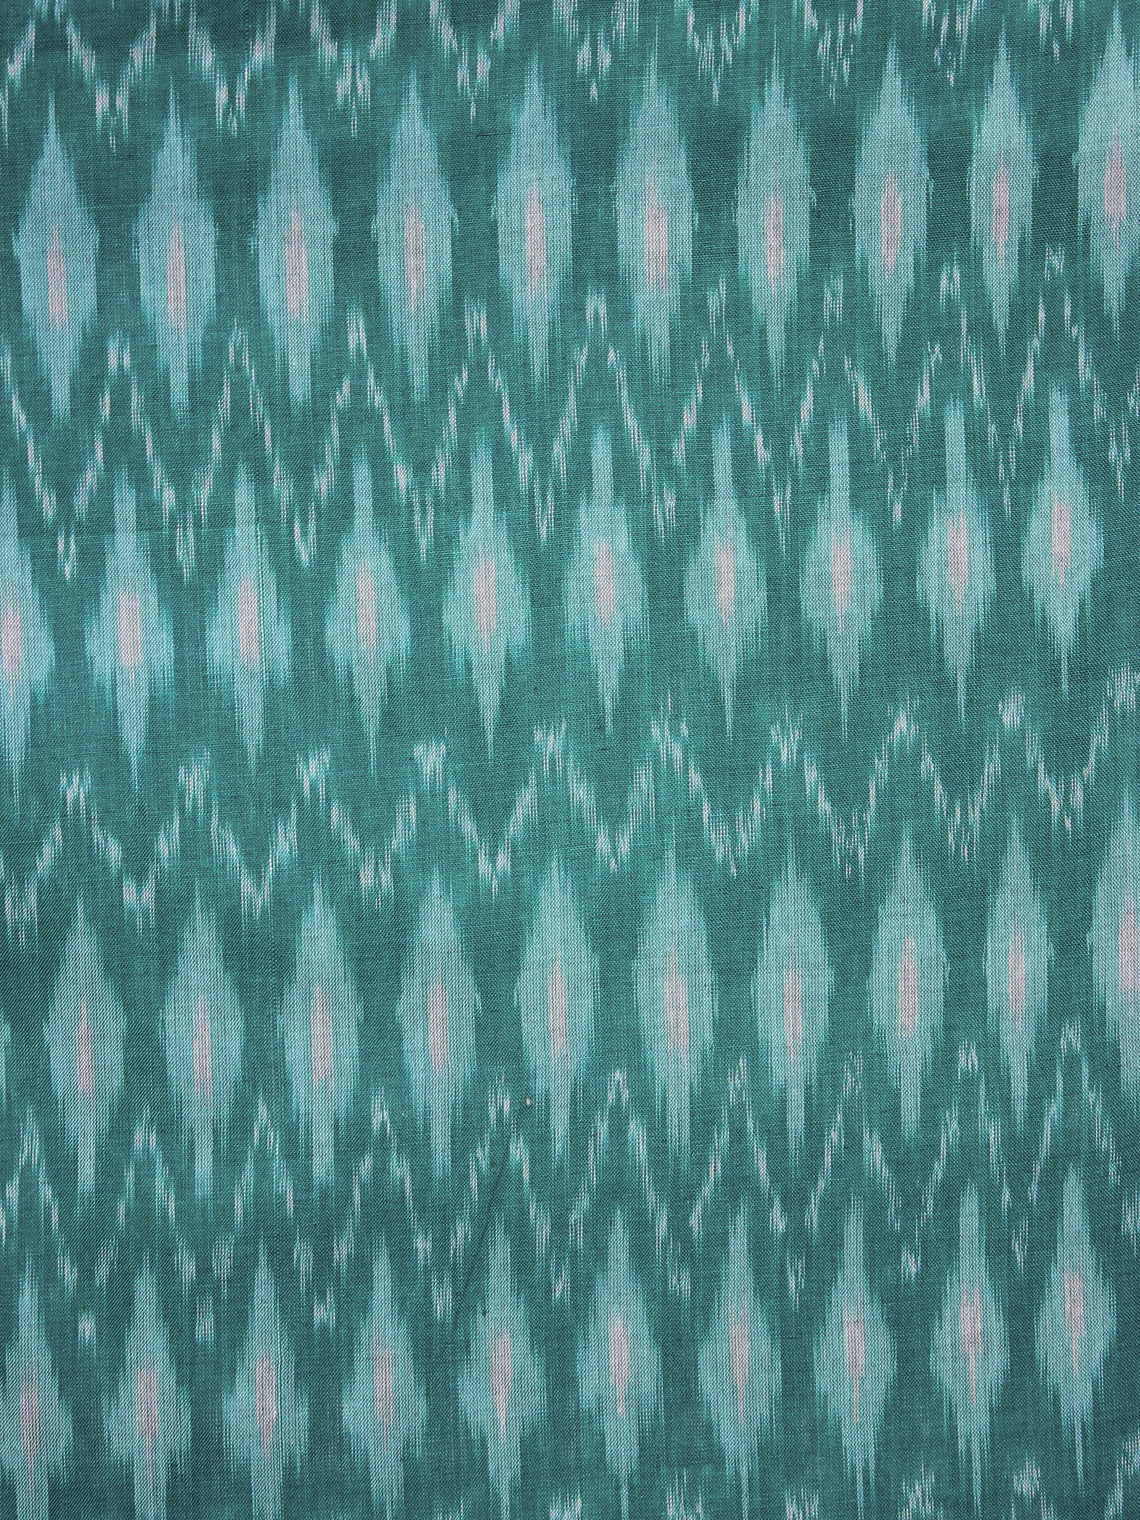 Teal Green Pochampally Hand Weaved Ikat Mercerised Fabric Per Meter - F003F1299